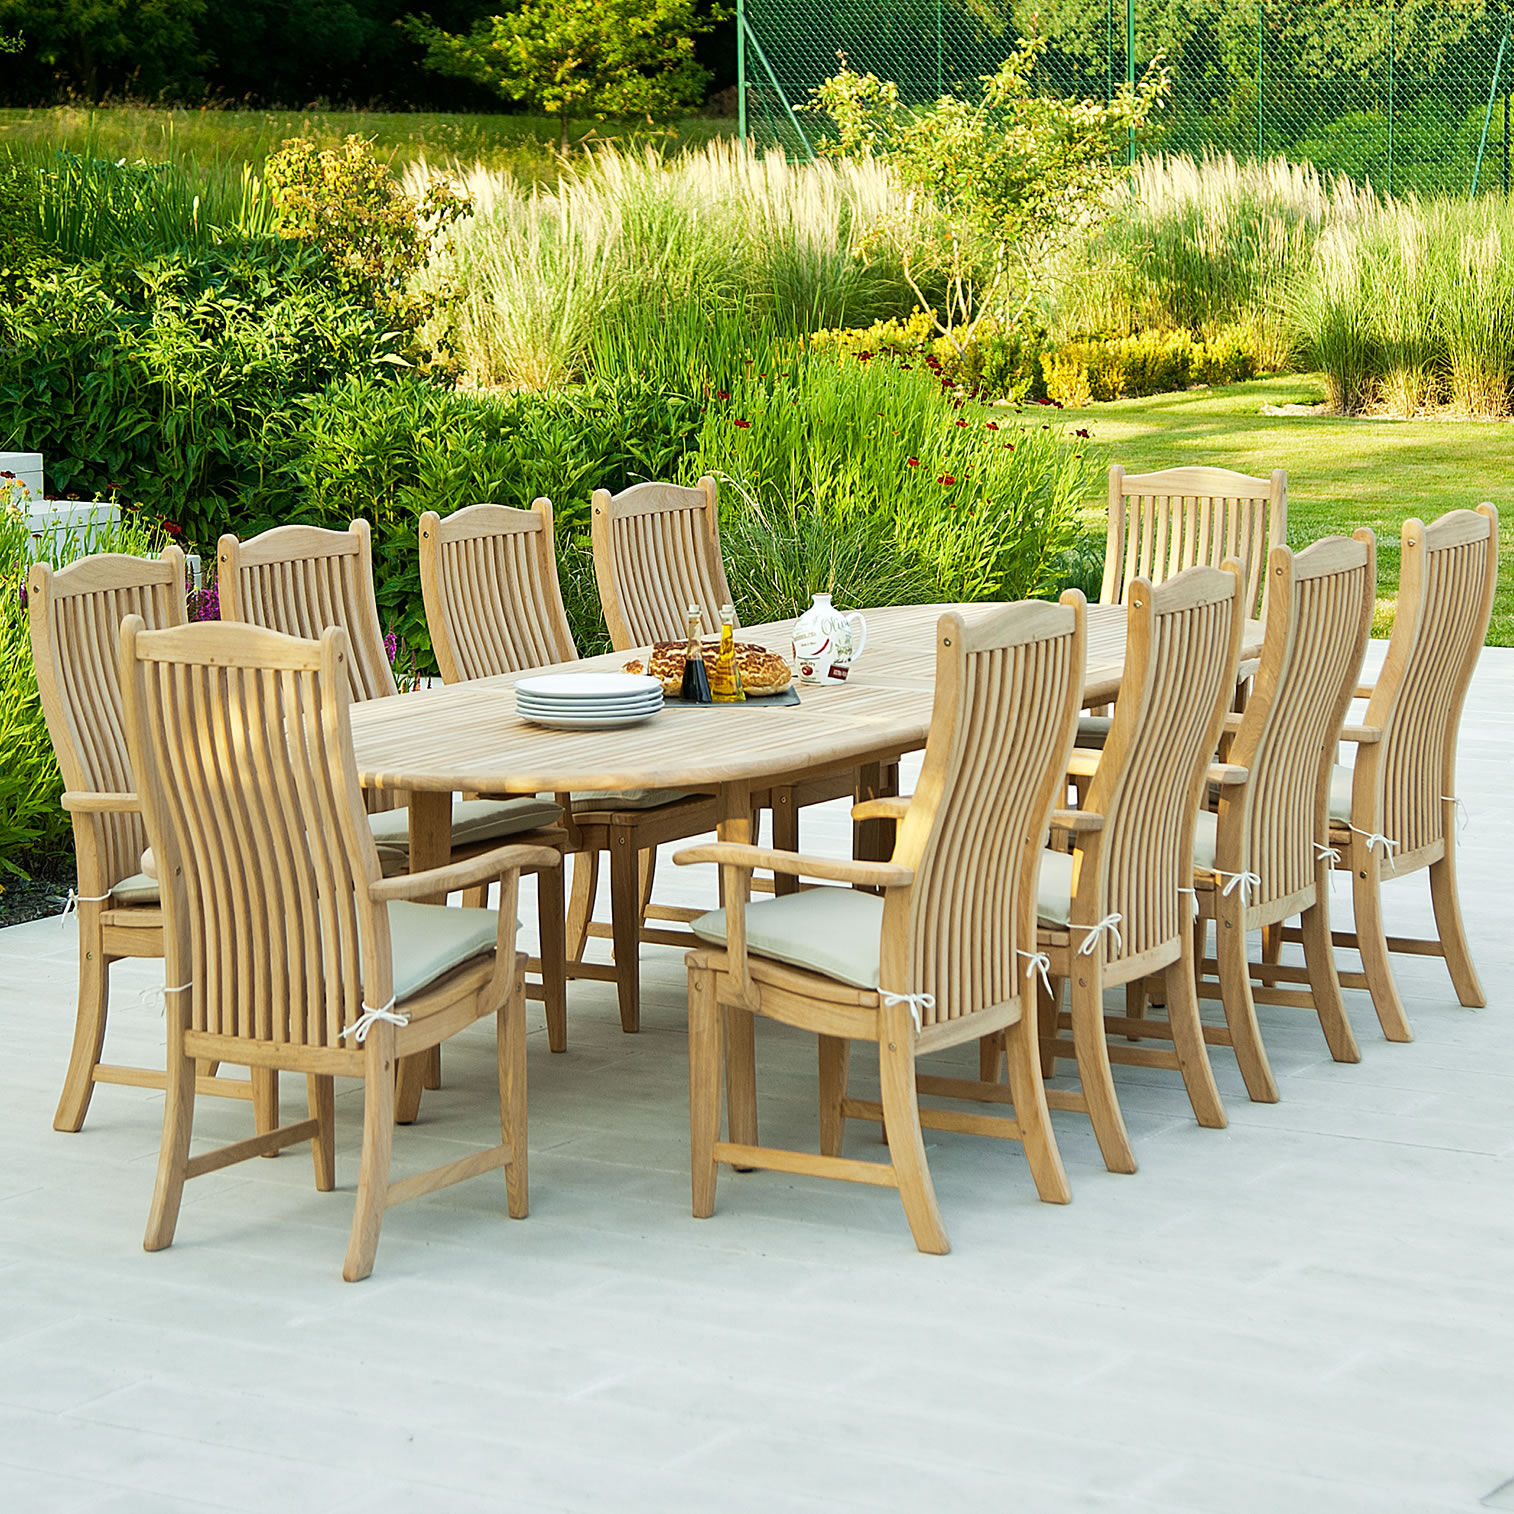 https://www.firstfurniture.co.uk/pub/media/catalog/product/r/o/roble-10-seater-set.jpg